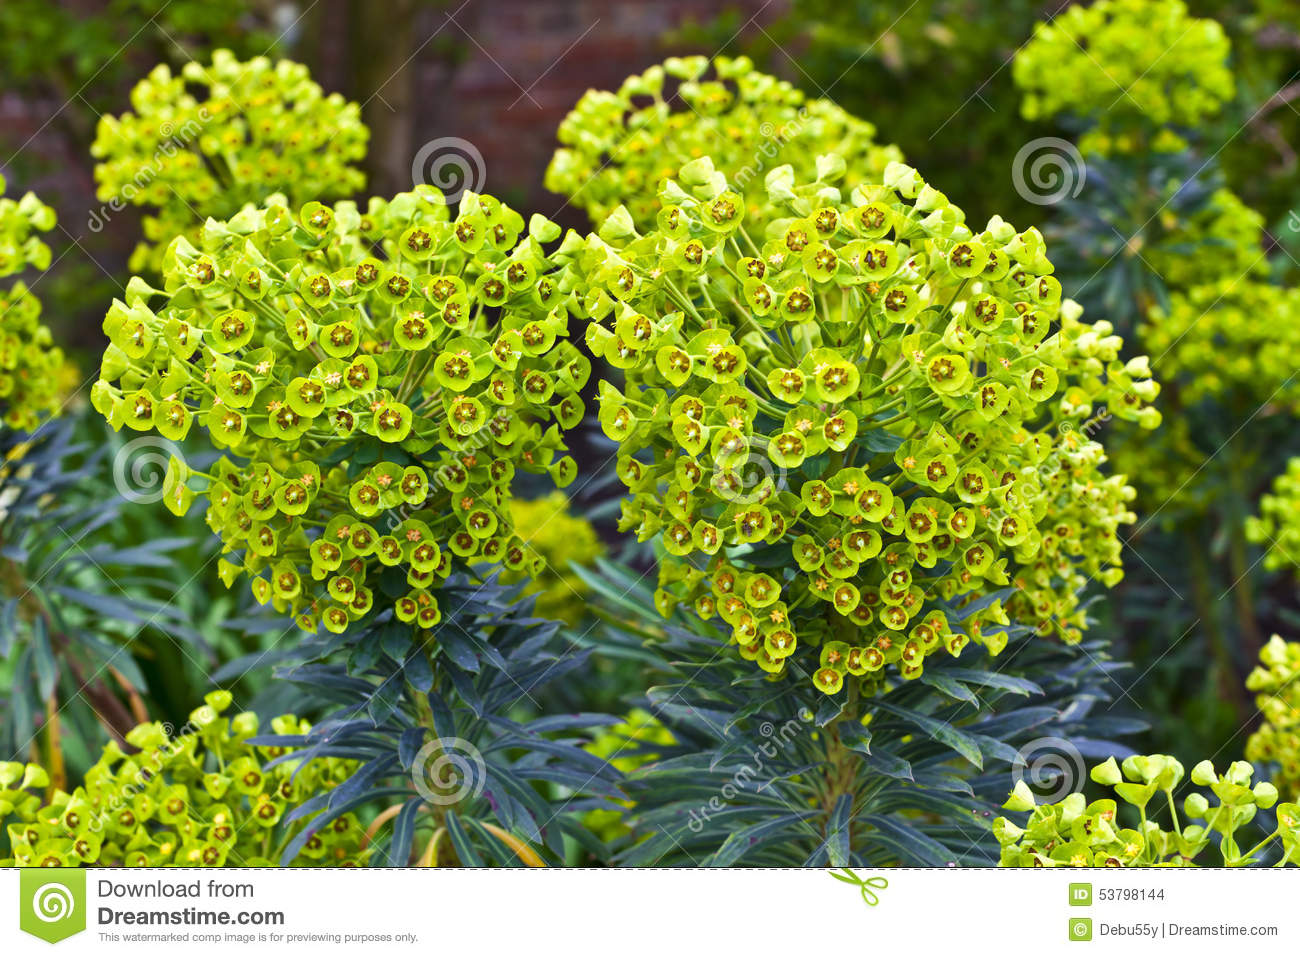 Plante vivace dans un jardin photo stock image 53798144 for Jardin de plante